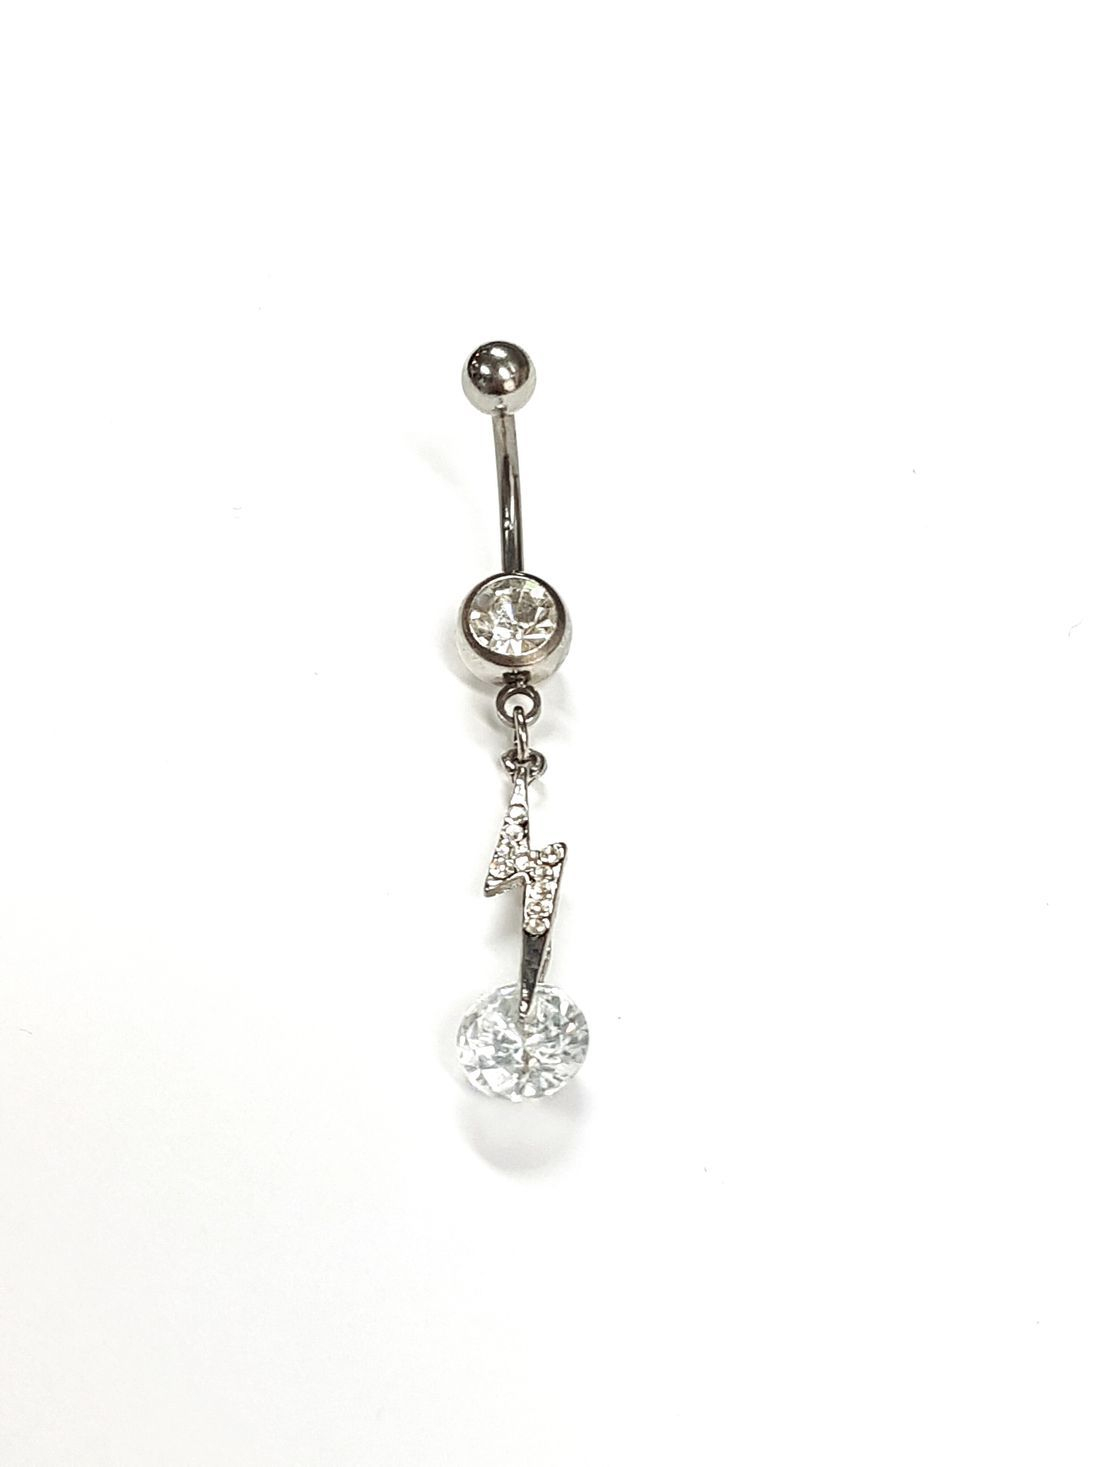 1.6mm x 10mm Clear Crystal Lightning Titanium Navel Bar  available at Kazbah online and our Leicester City Centre Shop